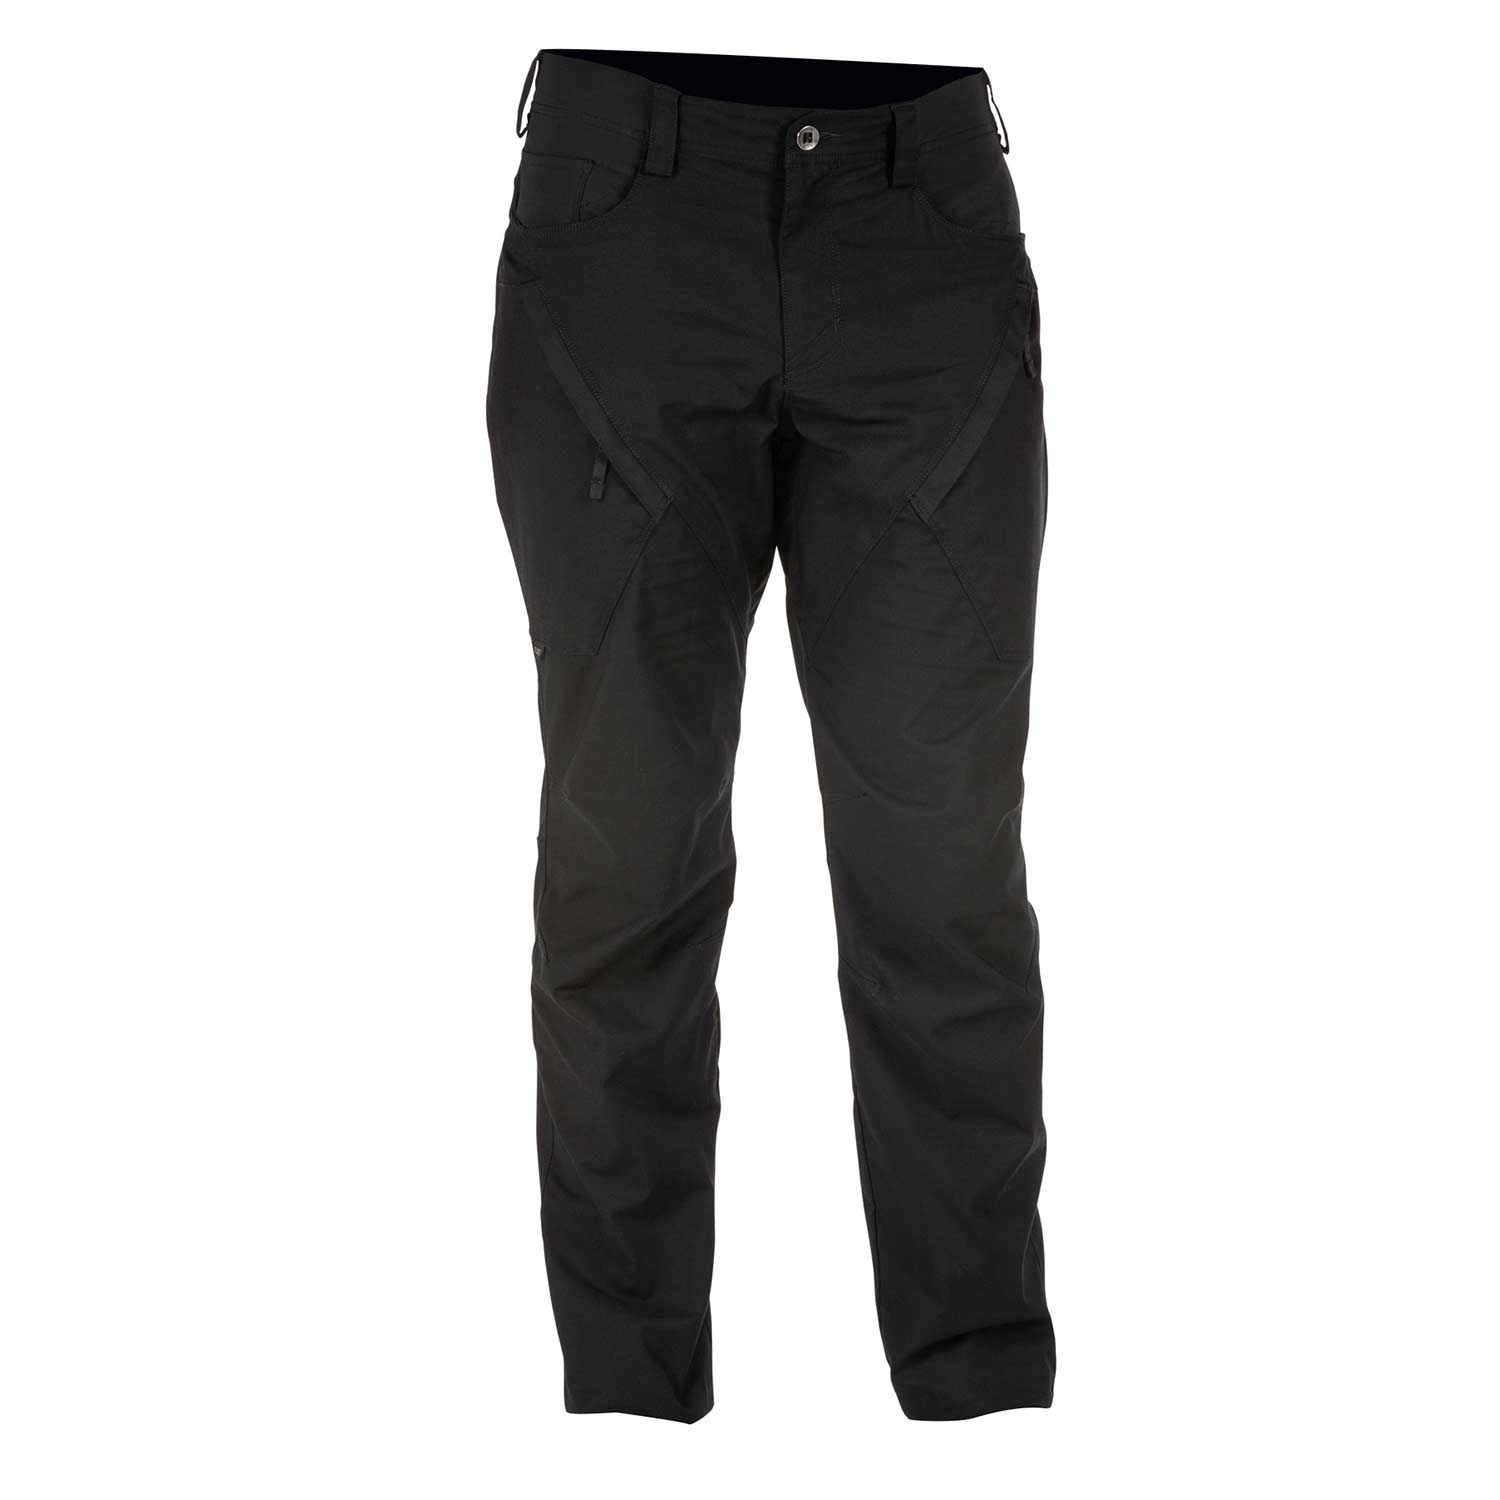 5.11 Tactical Capital Pants